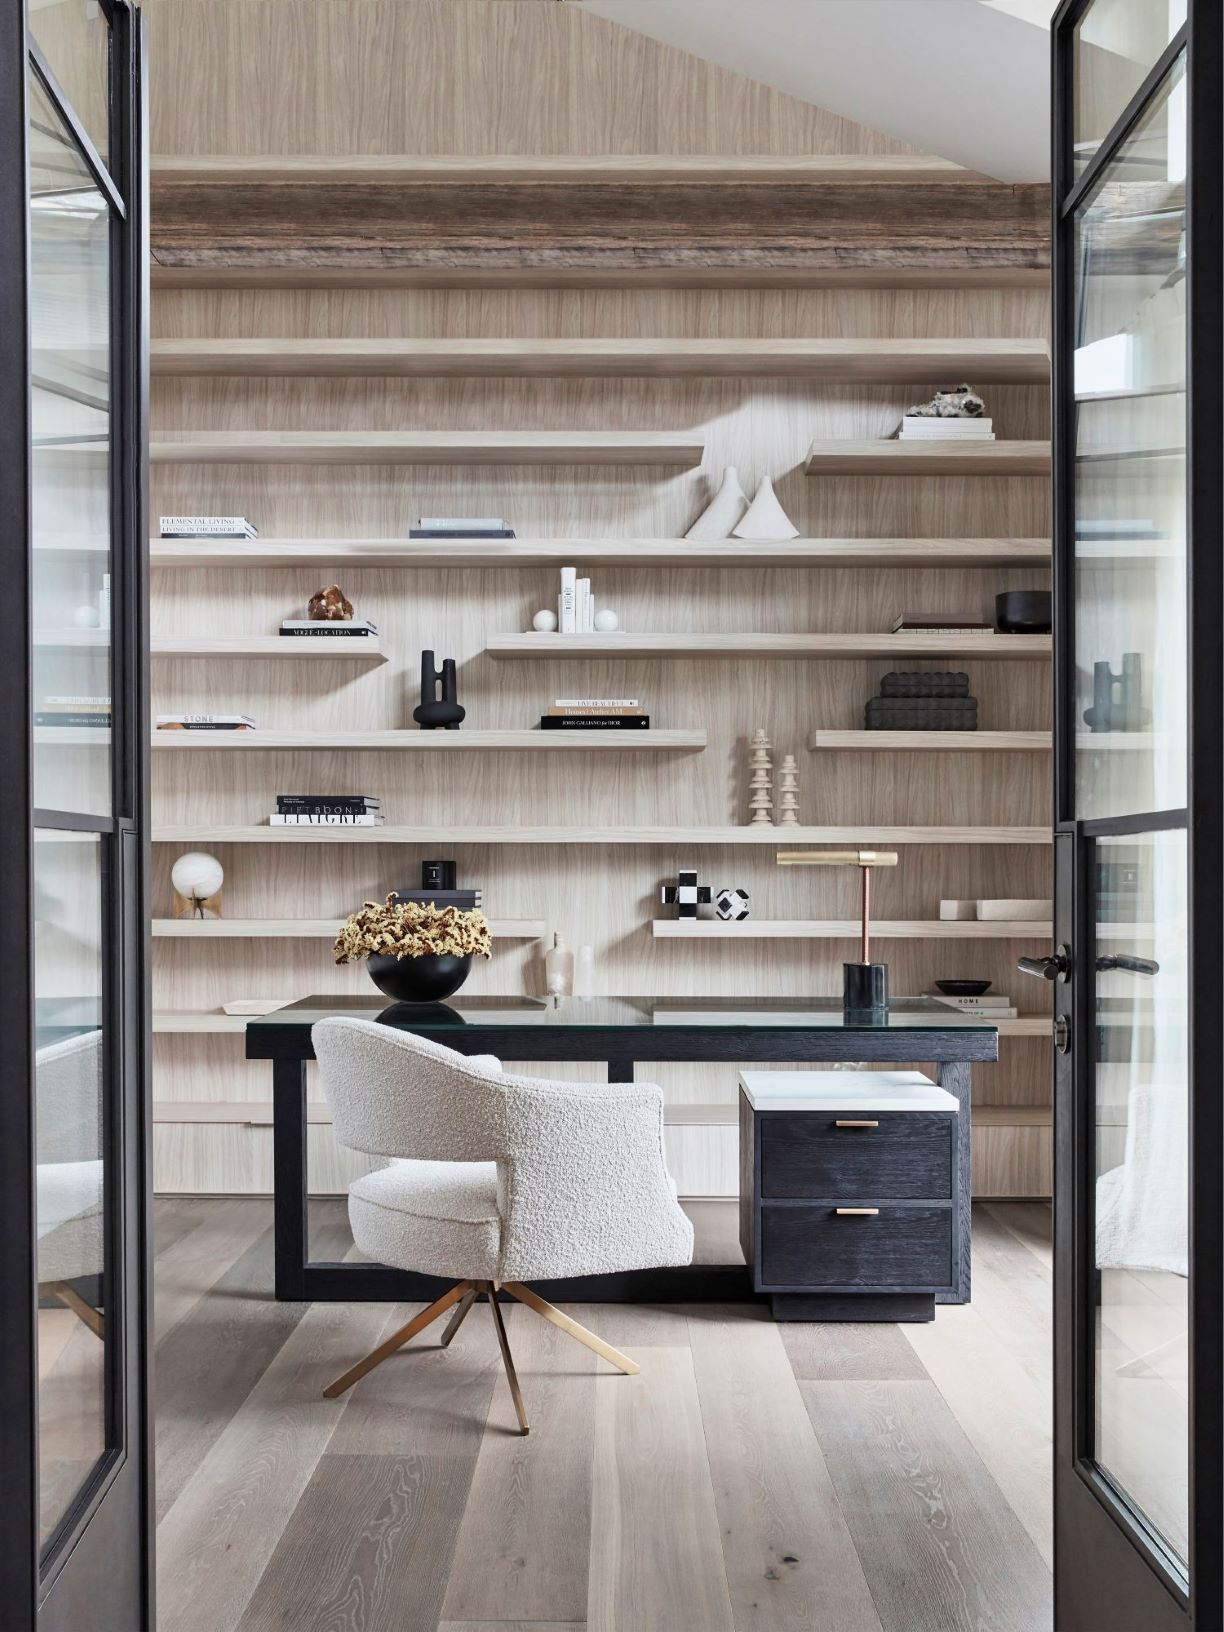 Coco Republic study with open shelves styled